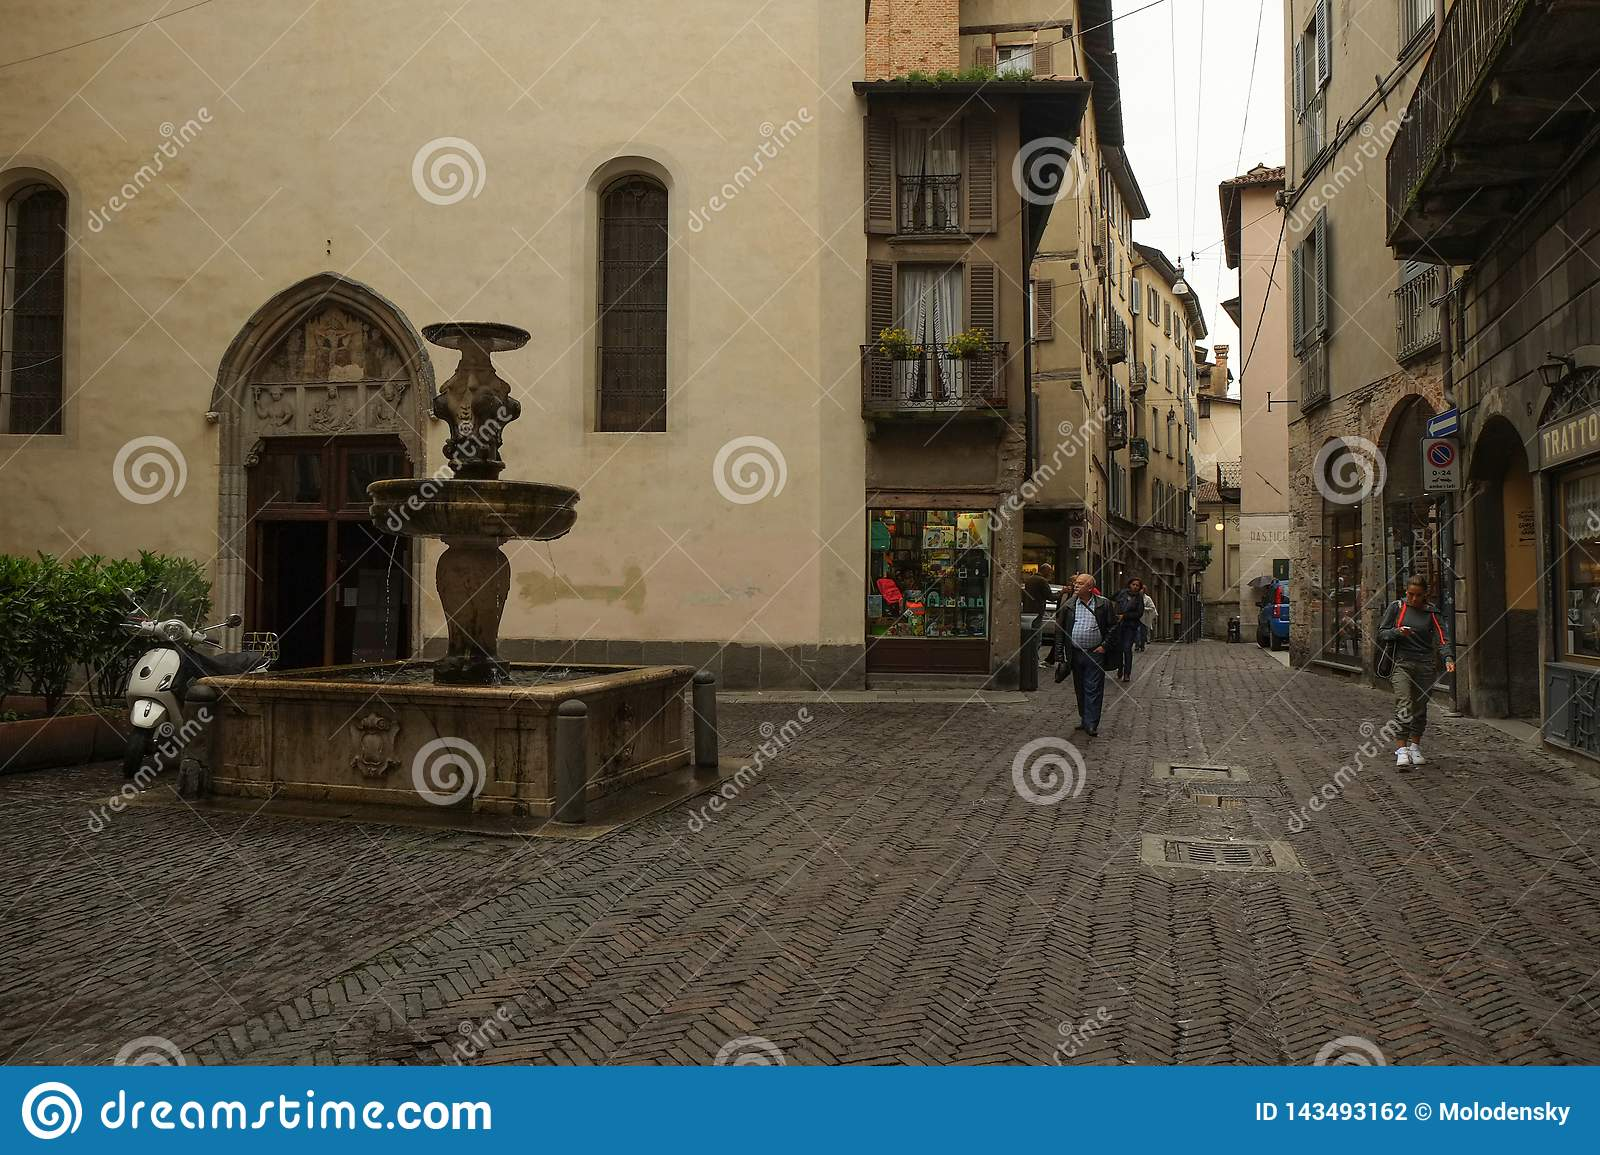 The Old Town in Bergamo, Italy